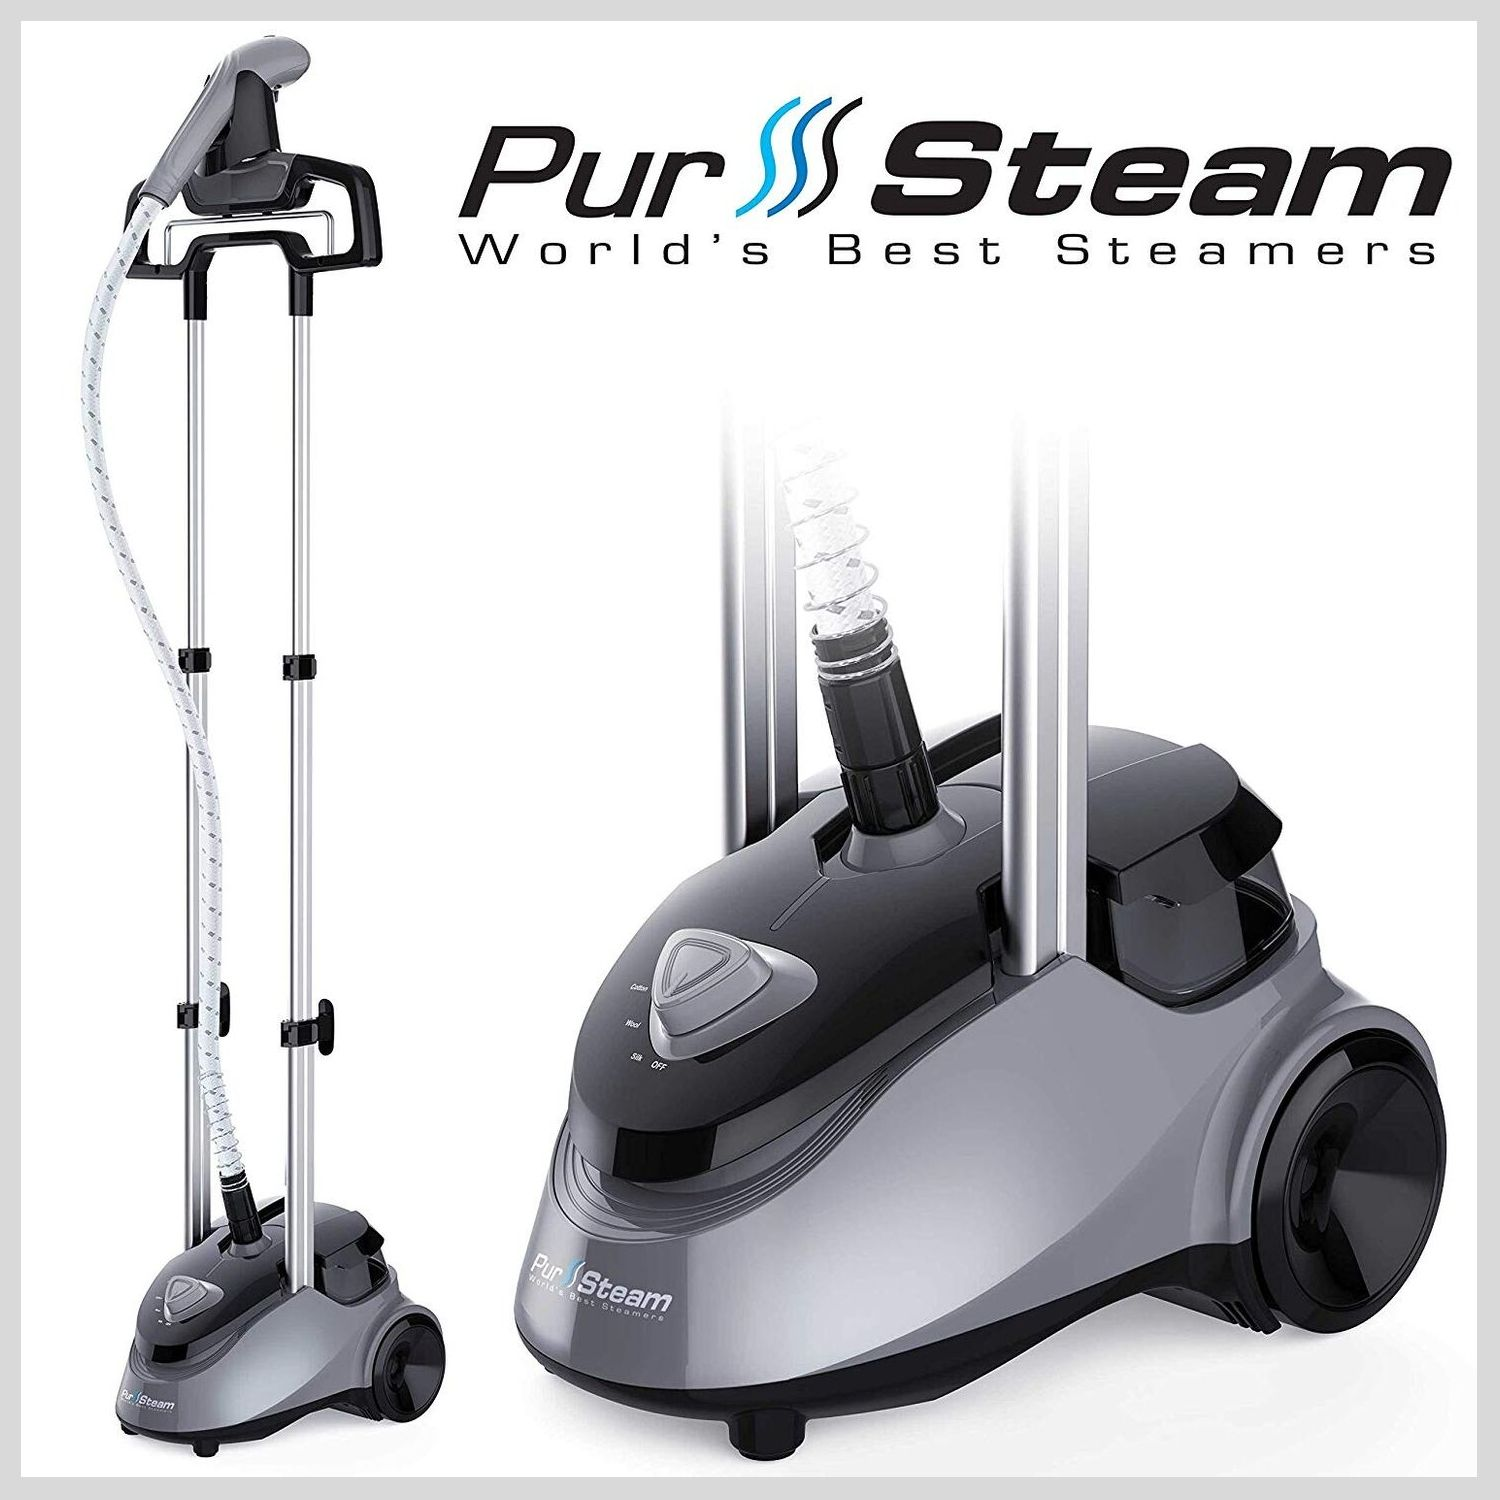 PurSteam Full Size - Professional Garment Fabric Steamer